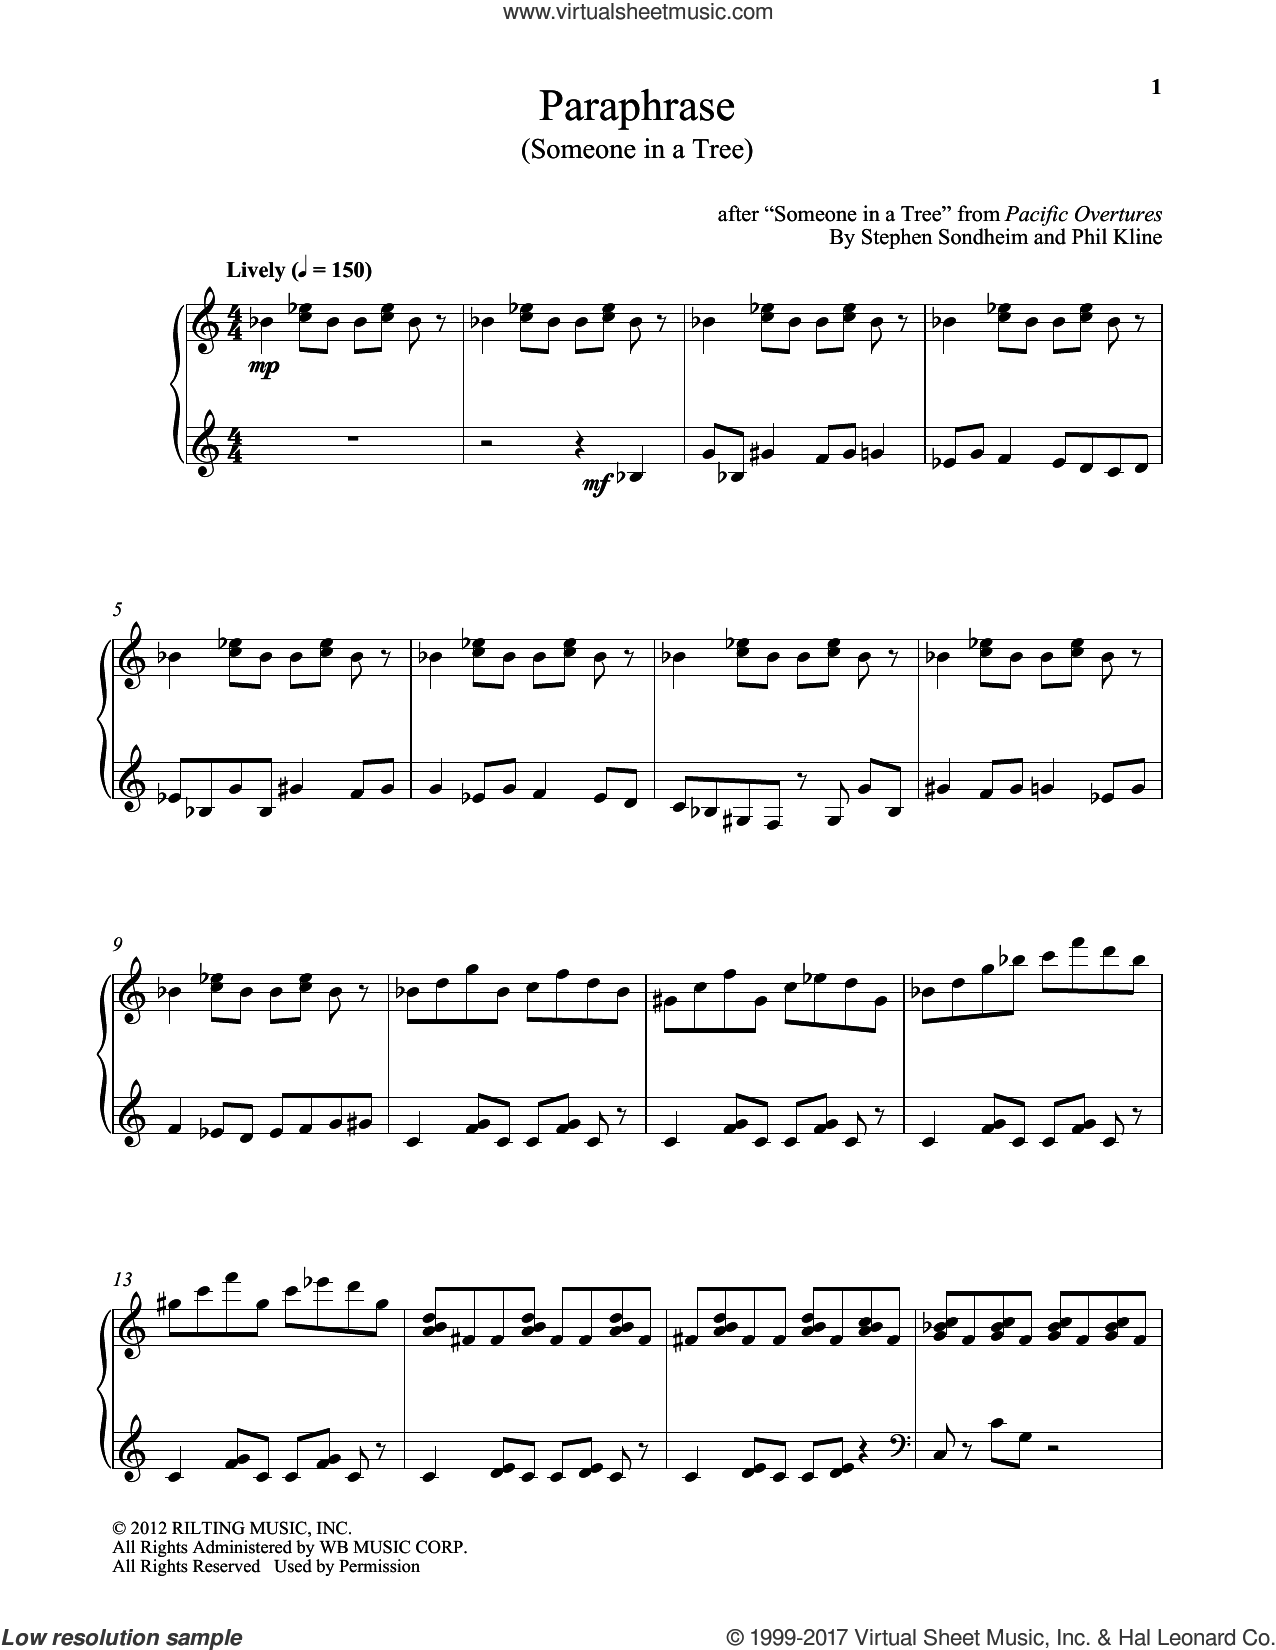 Paraphrase (Someone In A Tree) sheet music for piano solo by Stephen Sondheim and Phil Kline, intermediate